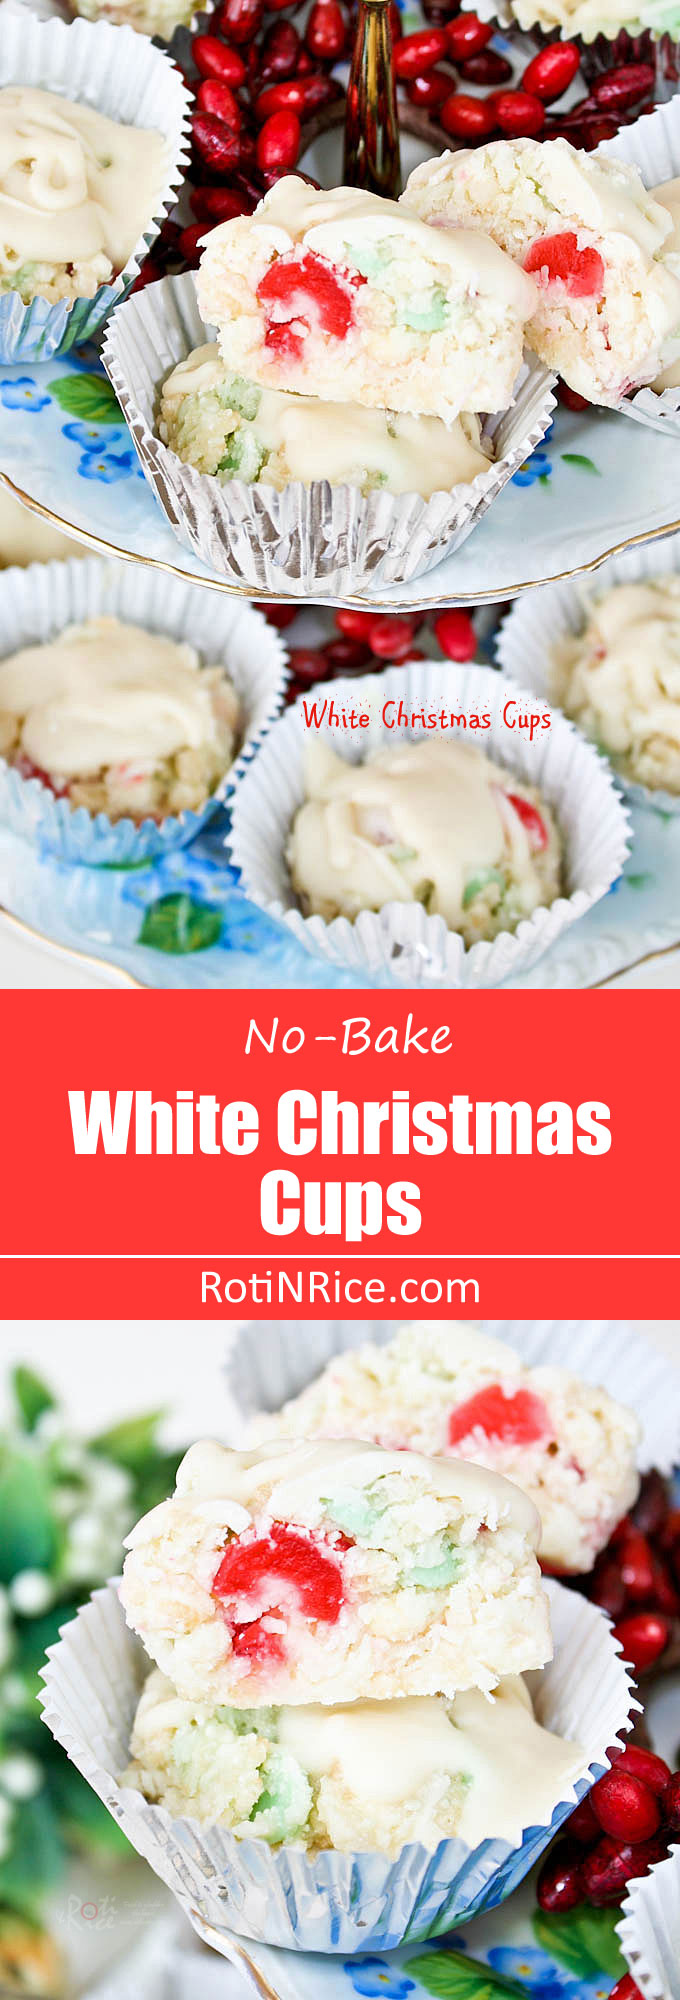 Rice krispies, coconut flakes, glazed cherries, mint chips, and chocolate combine to make these White Christmas Cups a gluten free and fun holiday treat. | RotiNRice.com